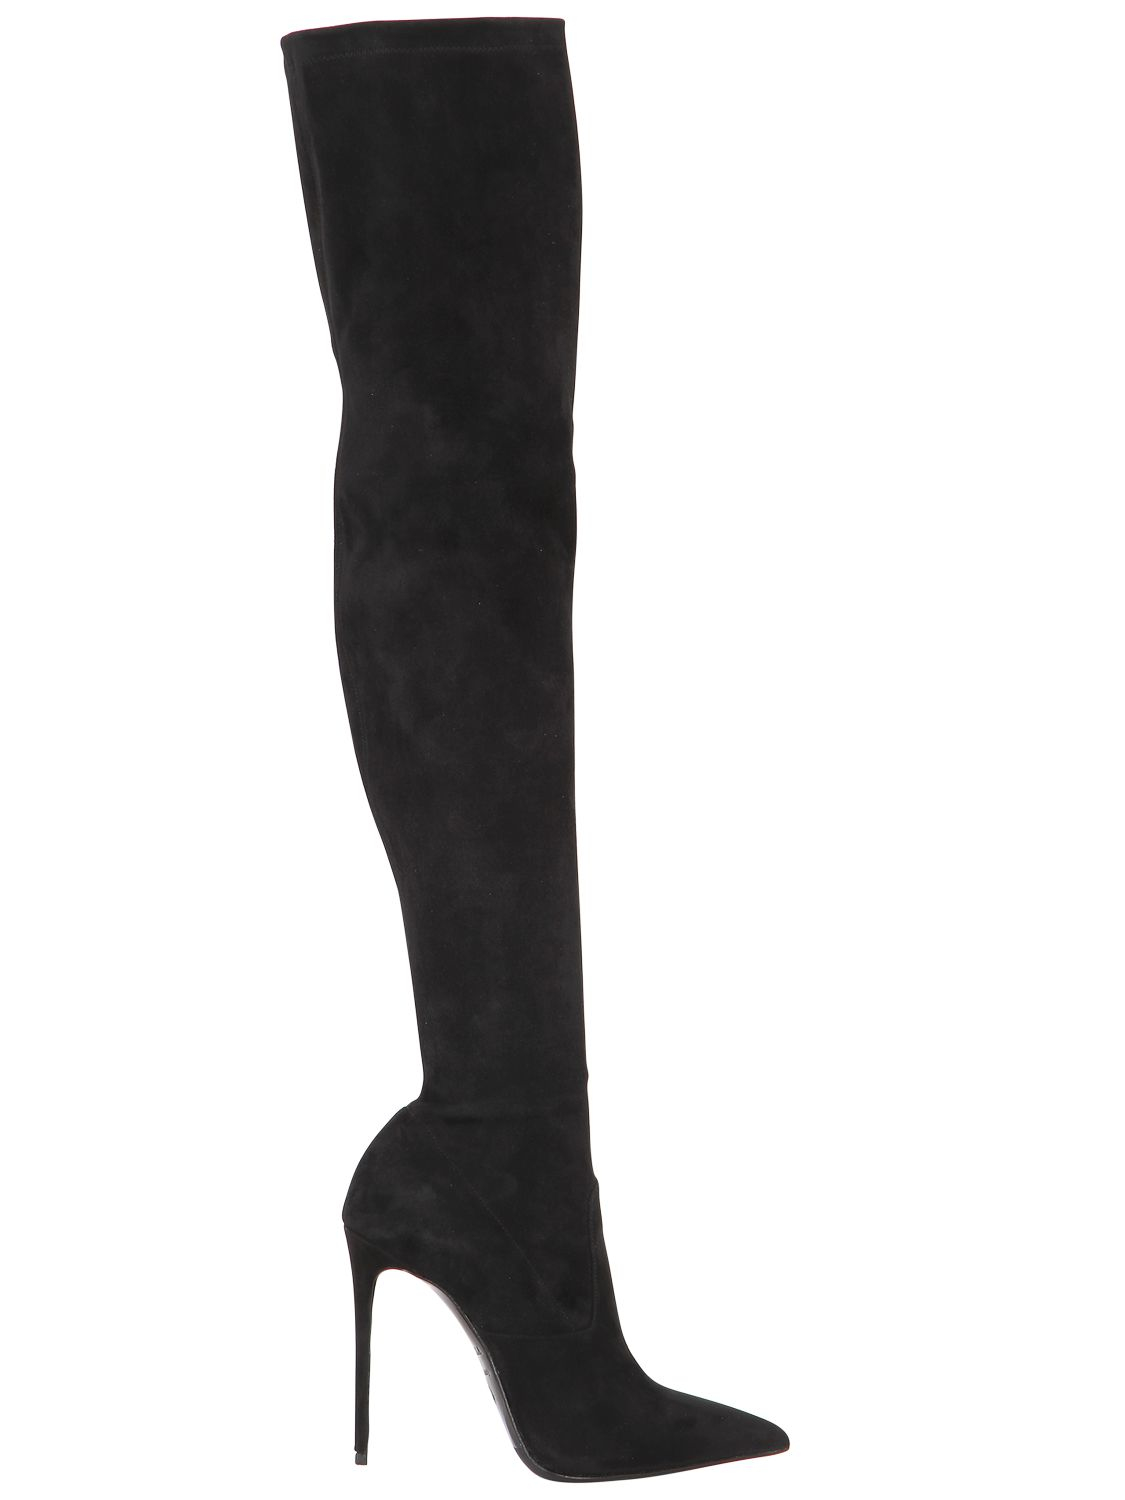 Le Silla Boots Le Silla 110mm Stretch Suede Over The Knee Boots In Black